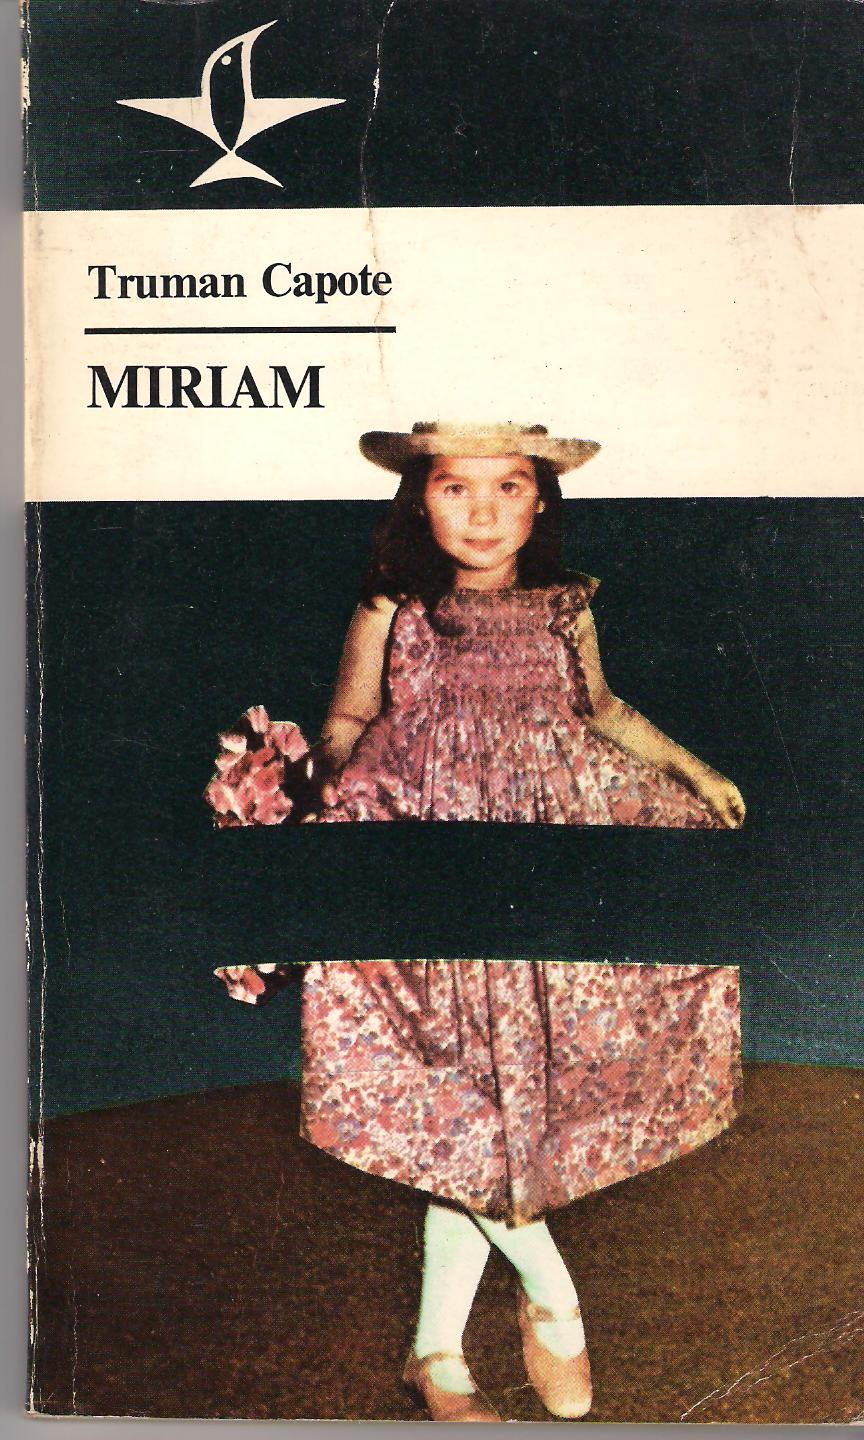 miriam by truman capote Miriam is a short story written by truman capote, originally published in june 1945 in mademoiselle magazine first edition in solo book form was published in 1981 under the title miriam.